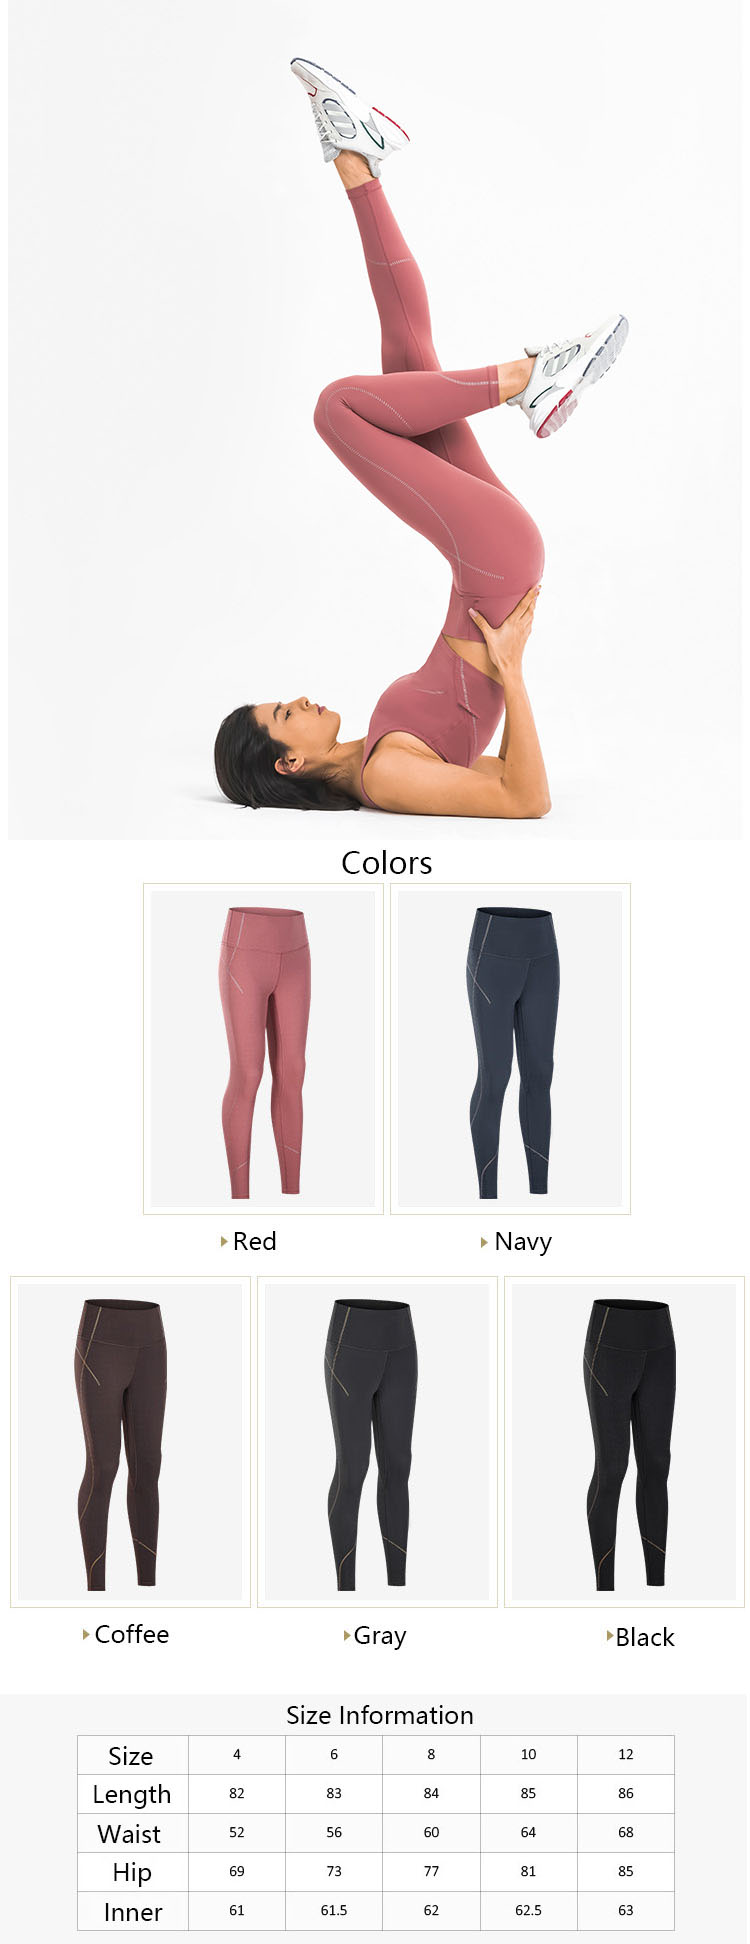 The classic womens black athletic leggings have always been popular